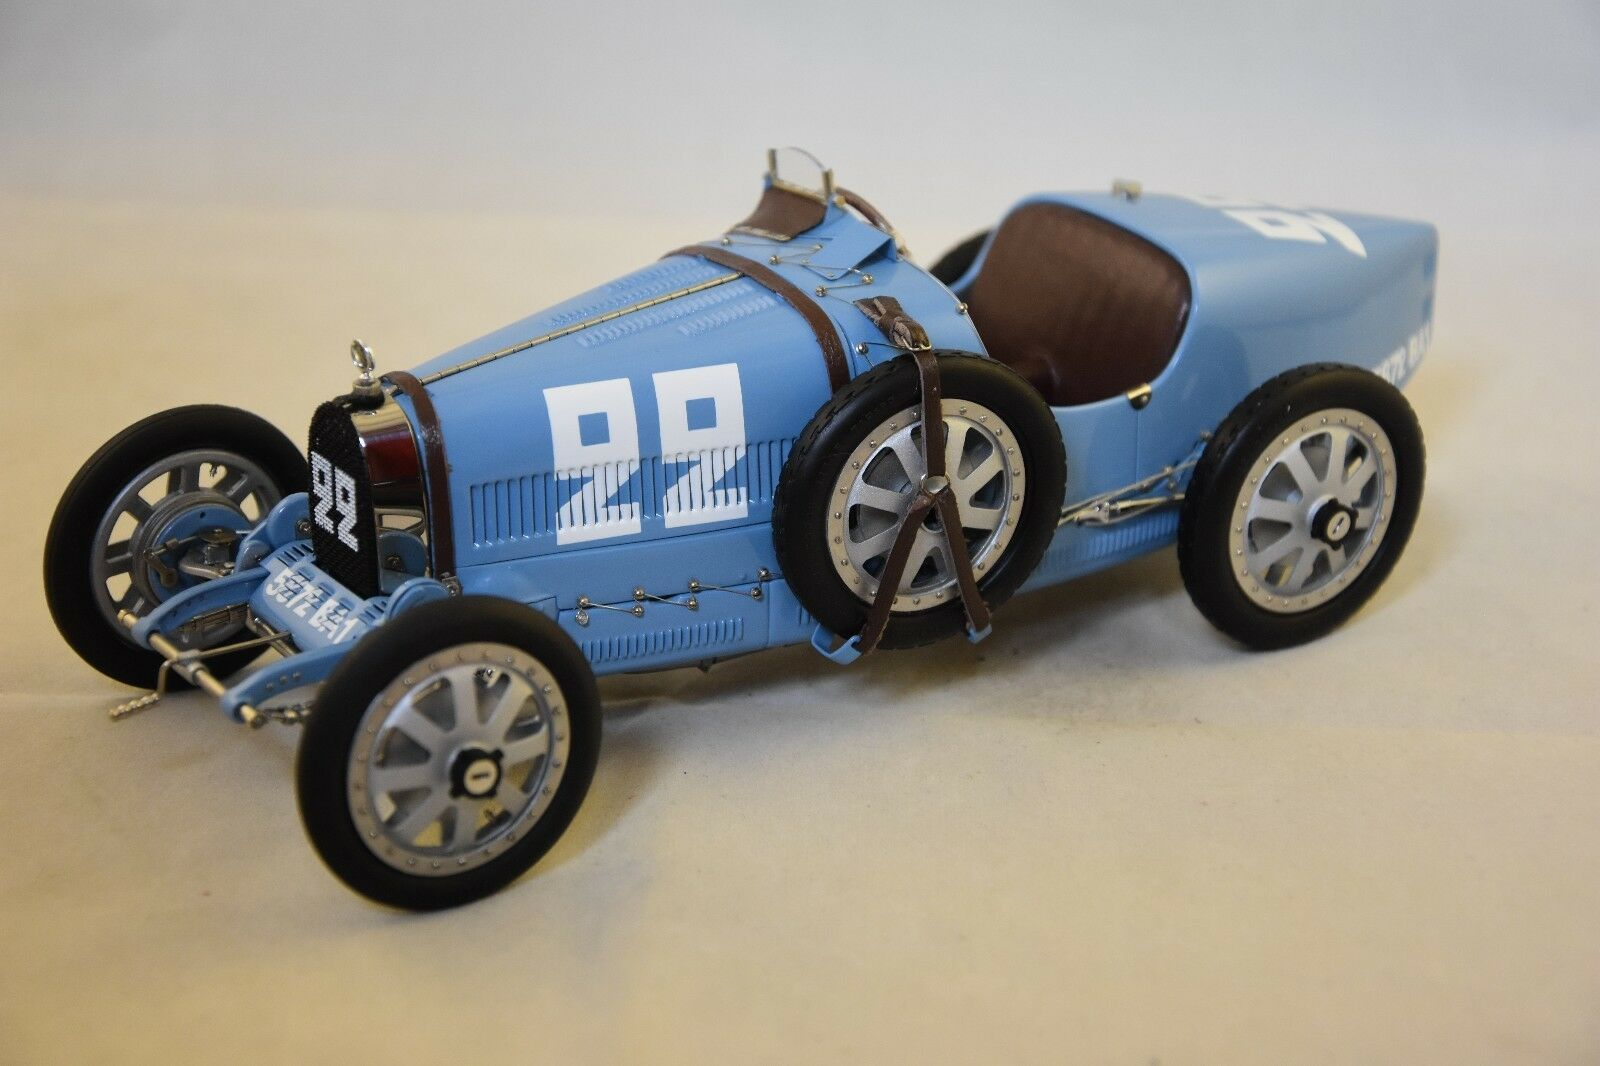 CMC cmcb - 004-bugatti t35 nation color project France 1 18